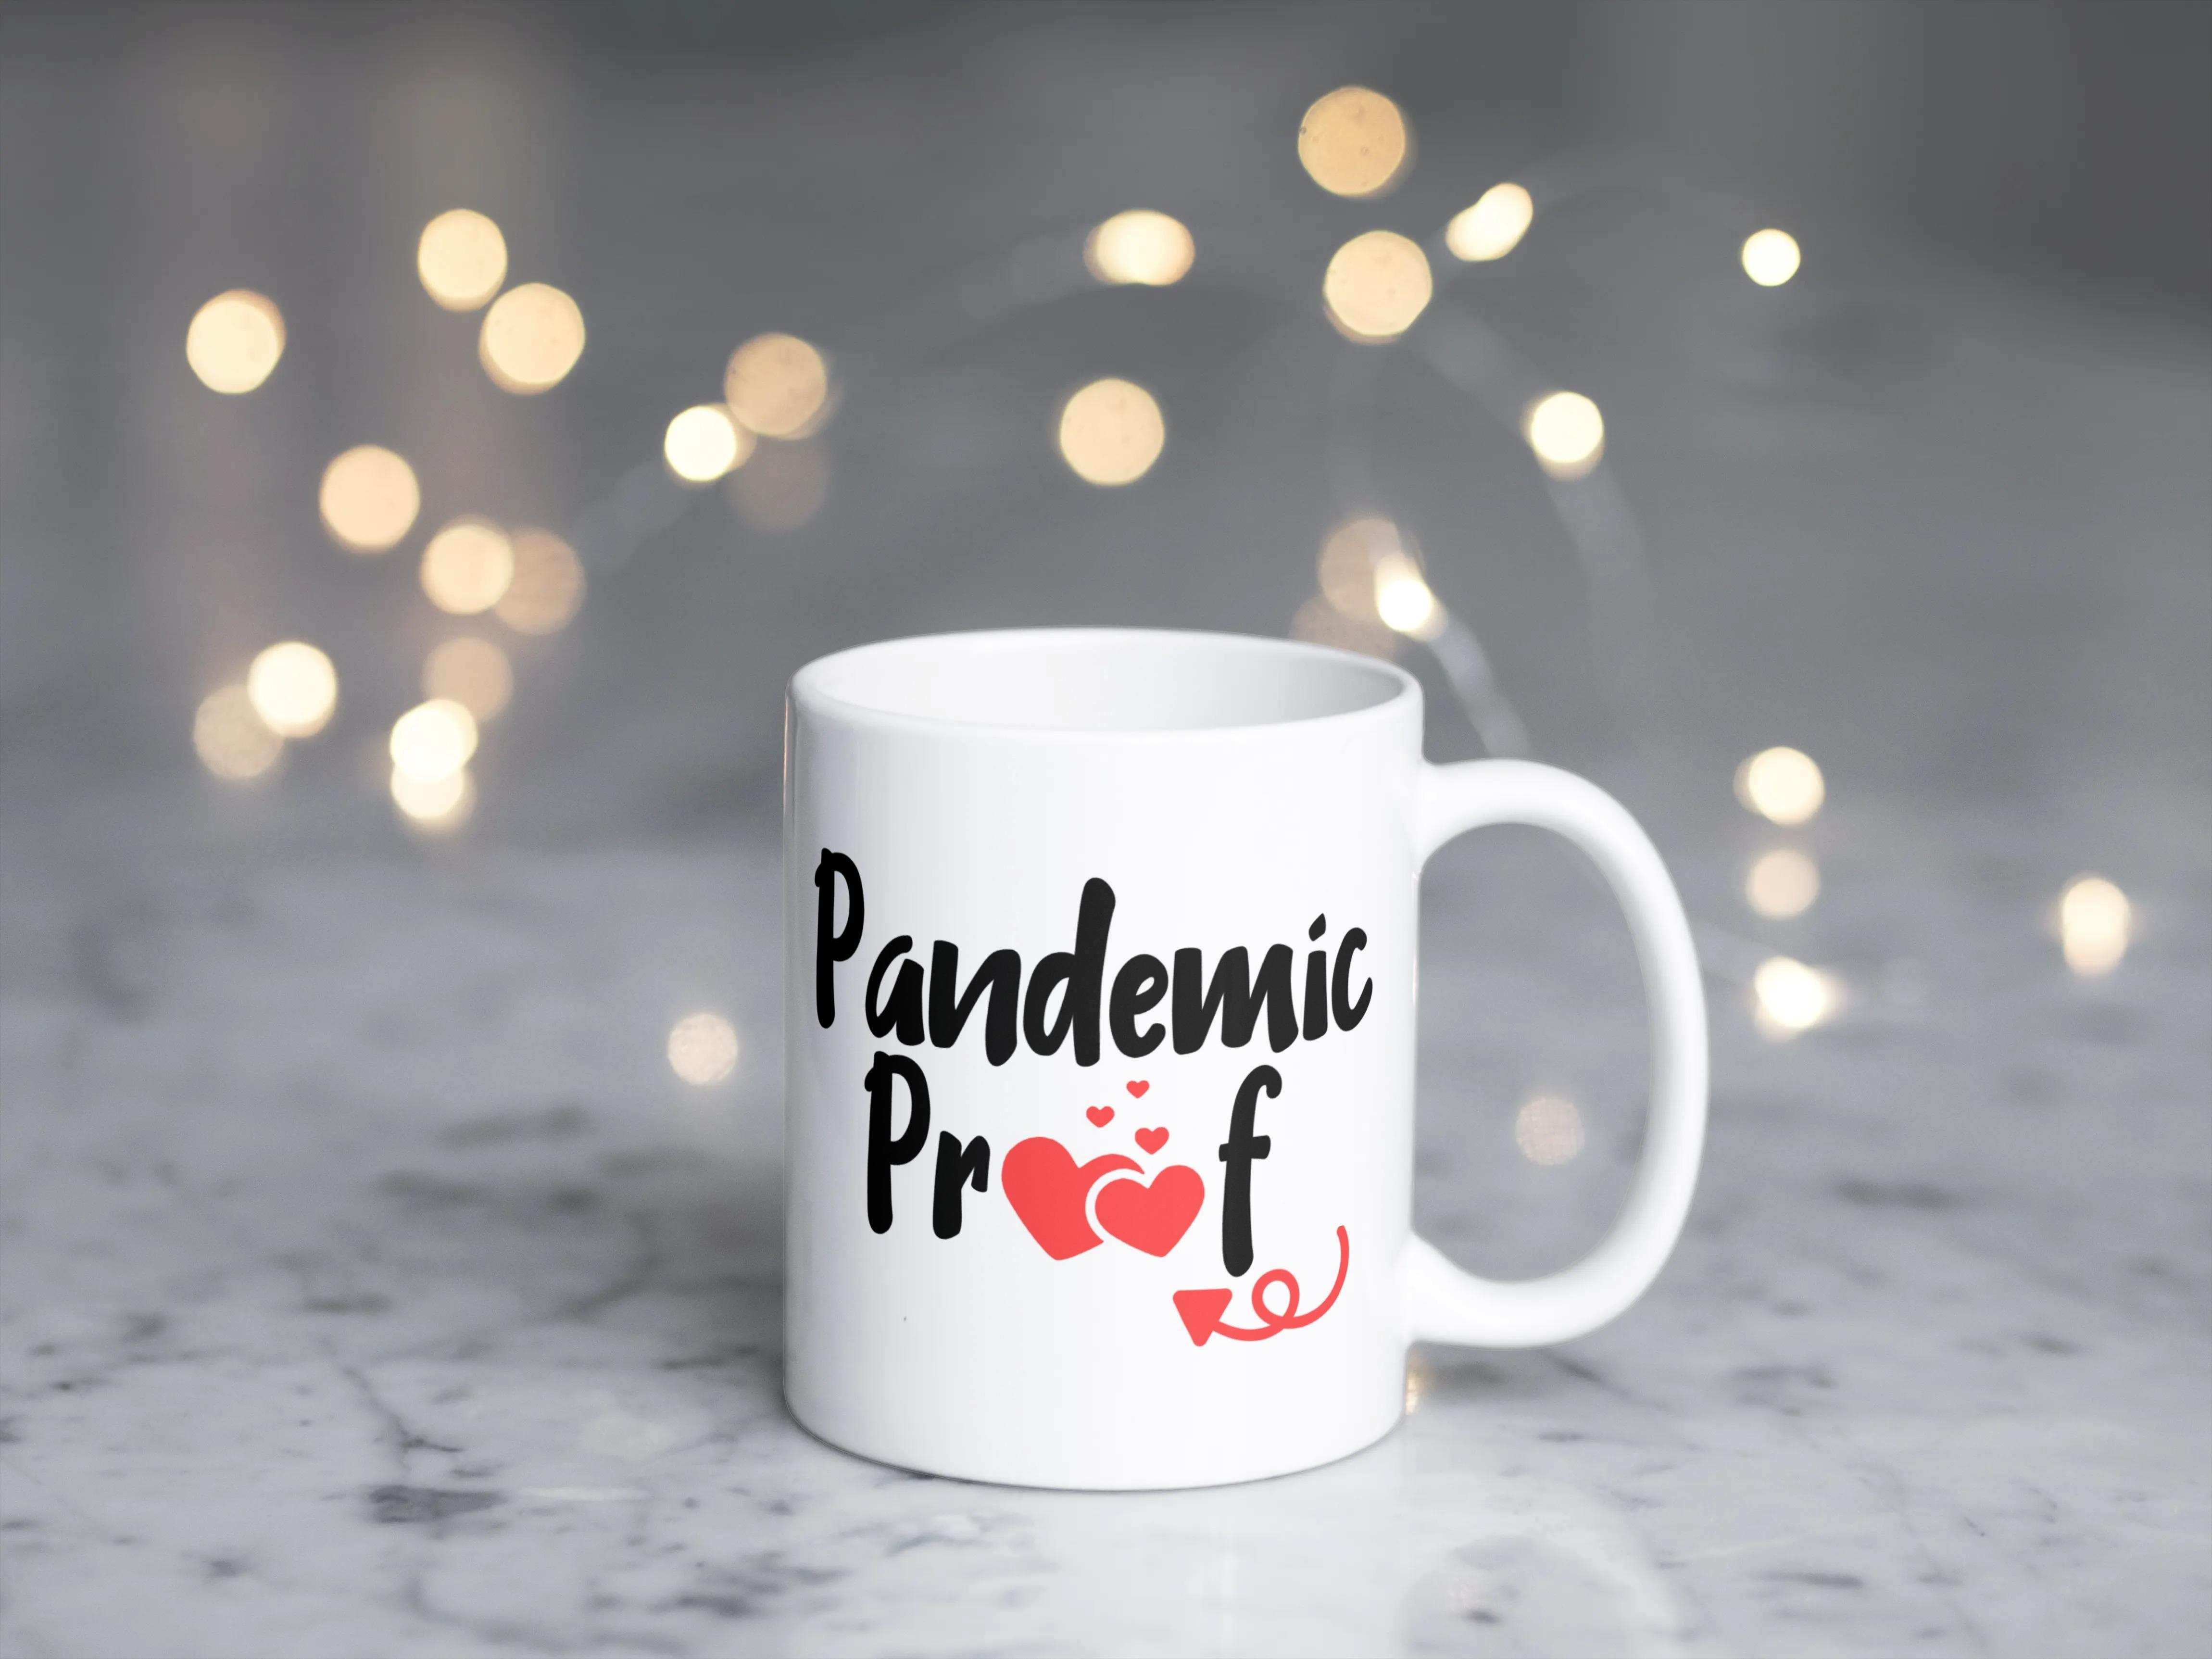 Pandemic Proof Love Mug